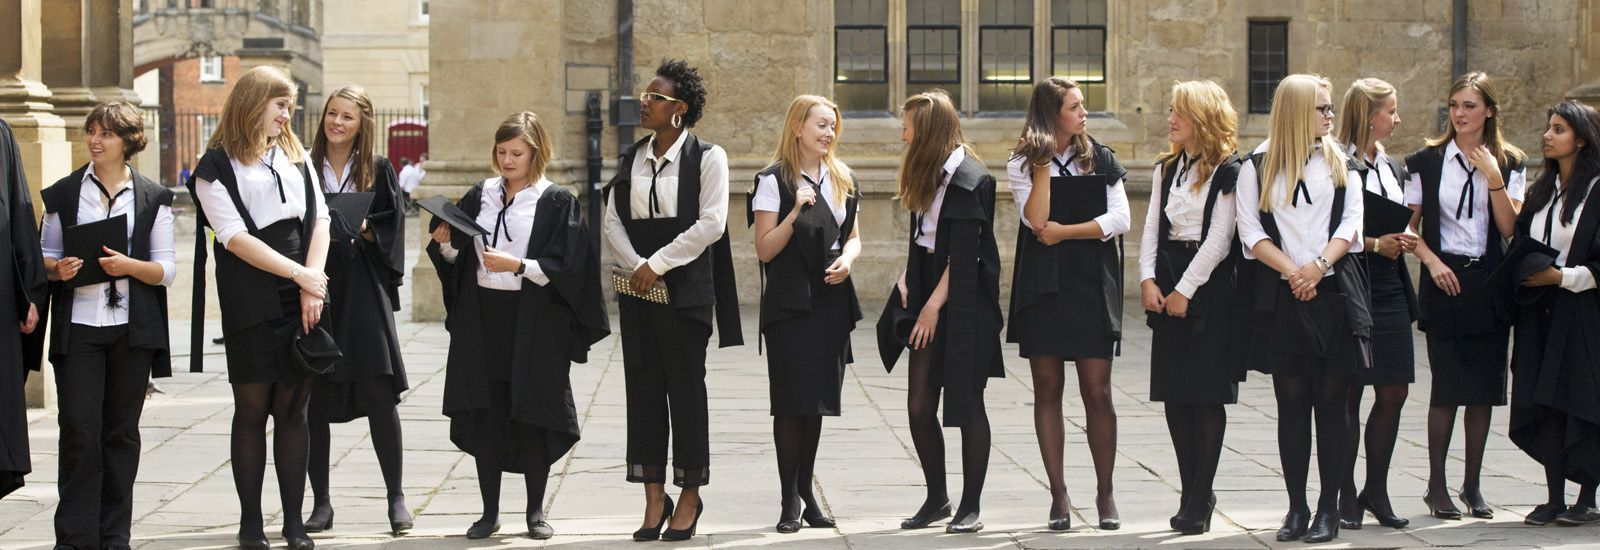 Oxford Graduands